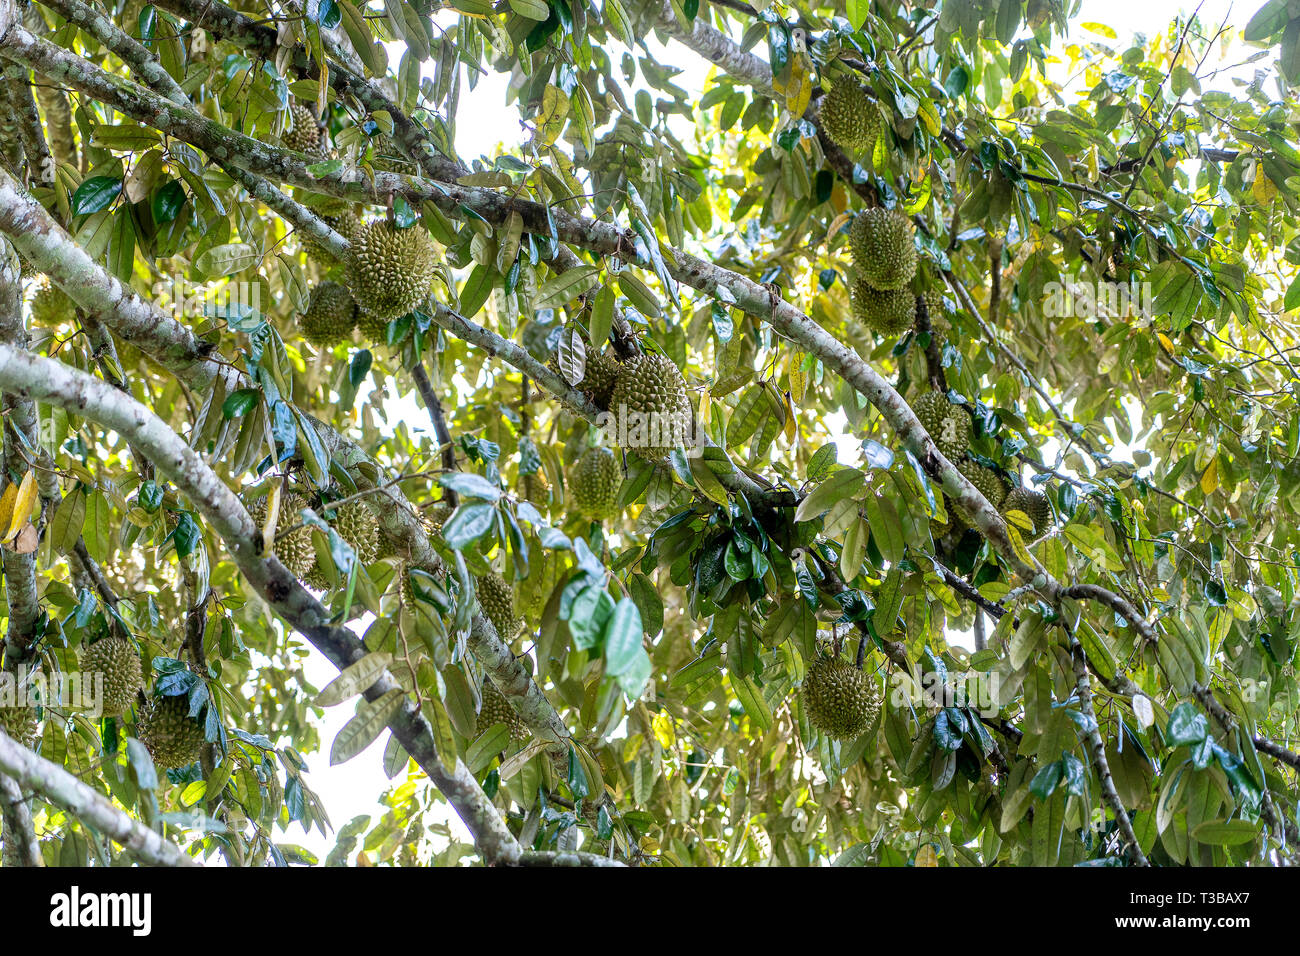 Durian tree, Fresh durian fruit on tree, Durians are the